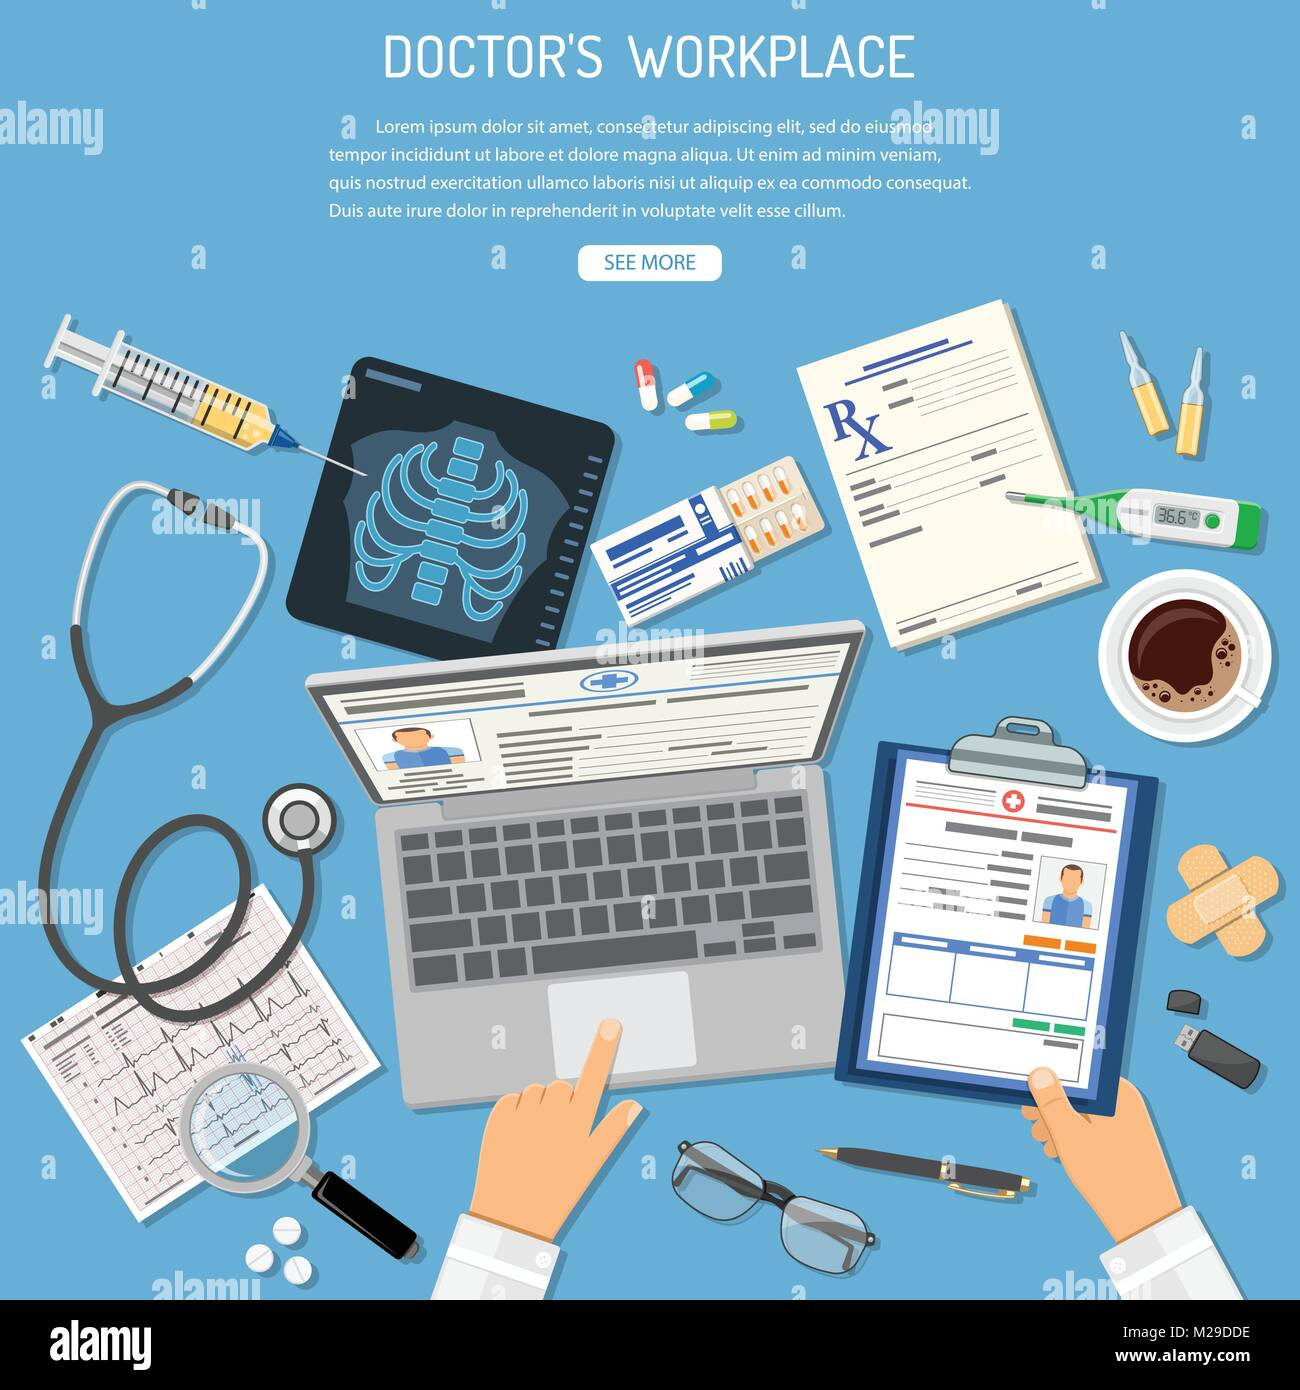 Doctors Workplace and Medical Diagnostics Concept - Stock Image